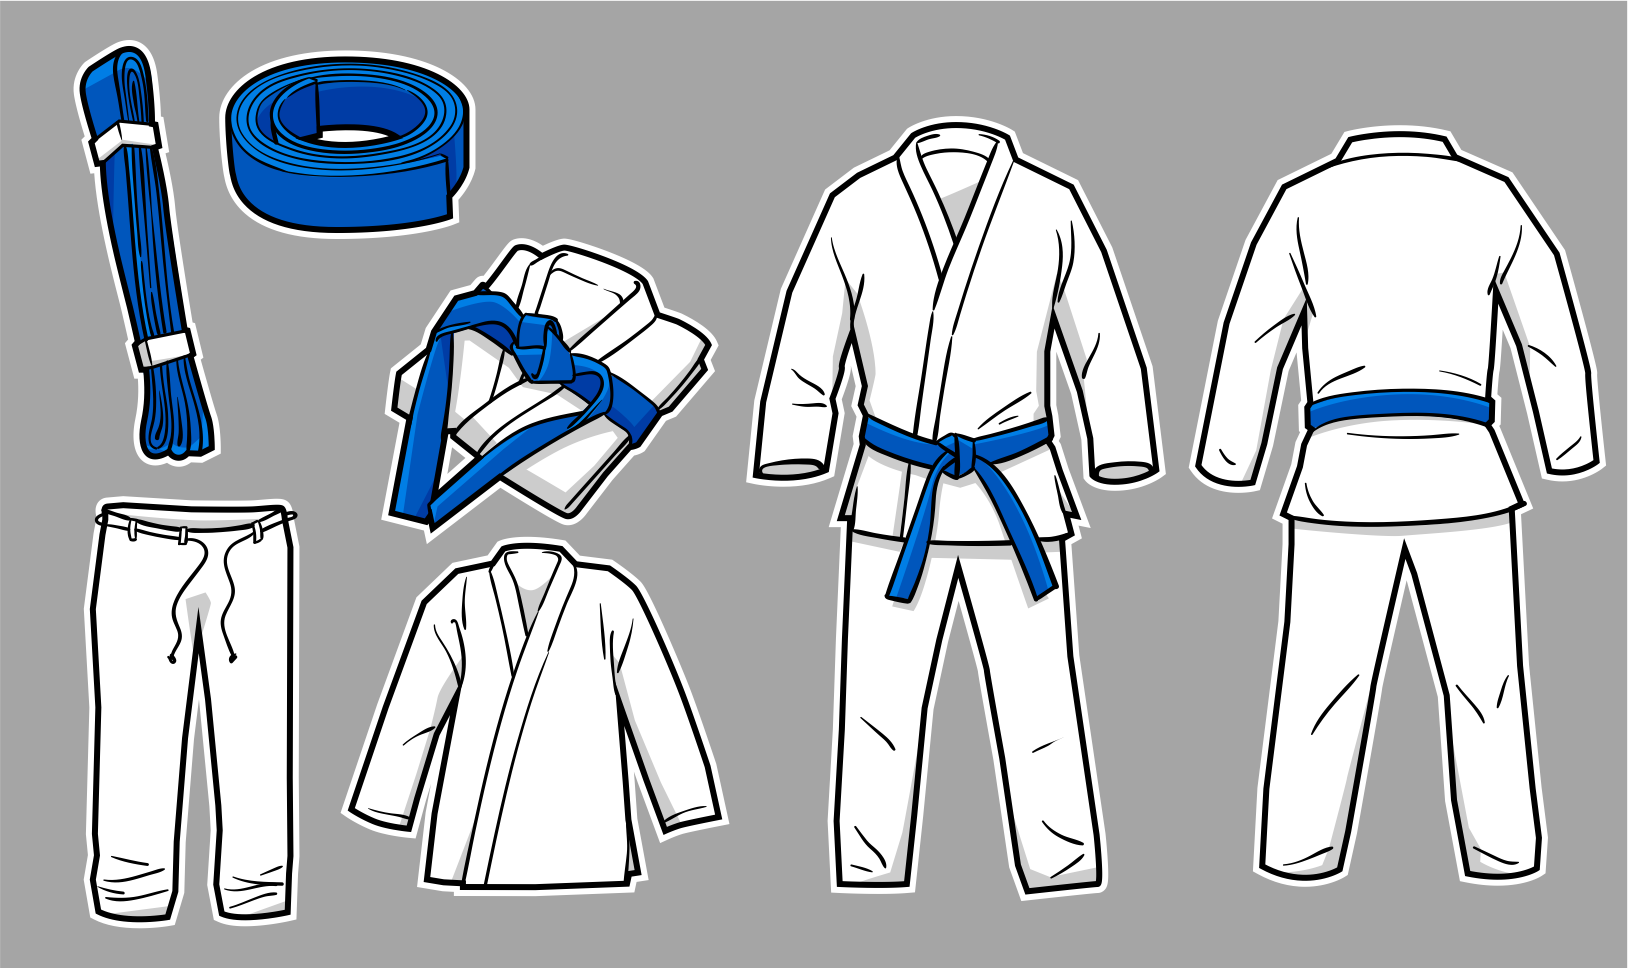 Brazilian Jiu-Jitsu Gear: The Combat Gear in Your Corner